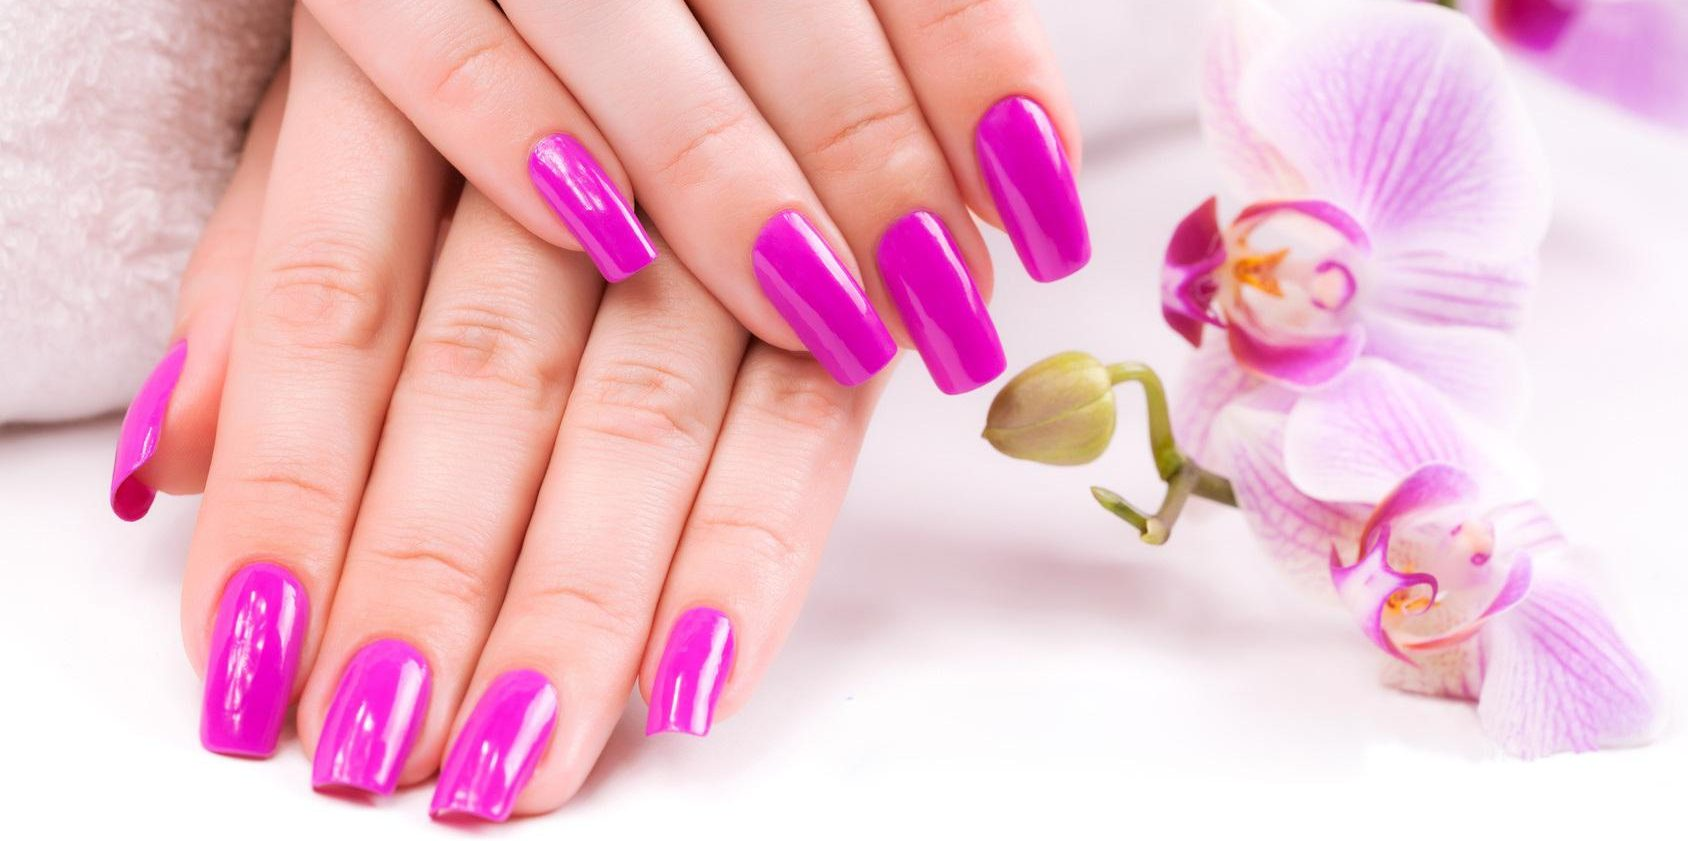 NAIL ART HEALTH AND BEAUTY